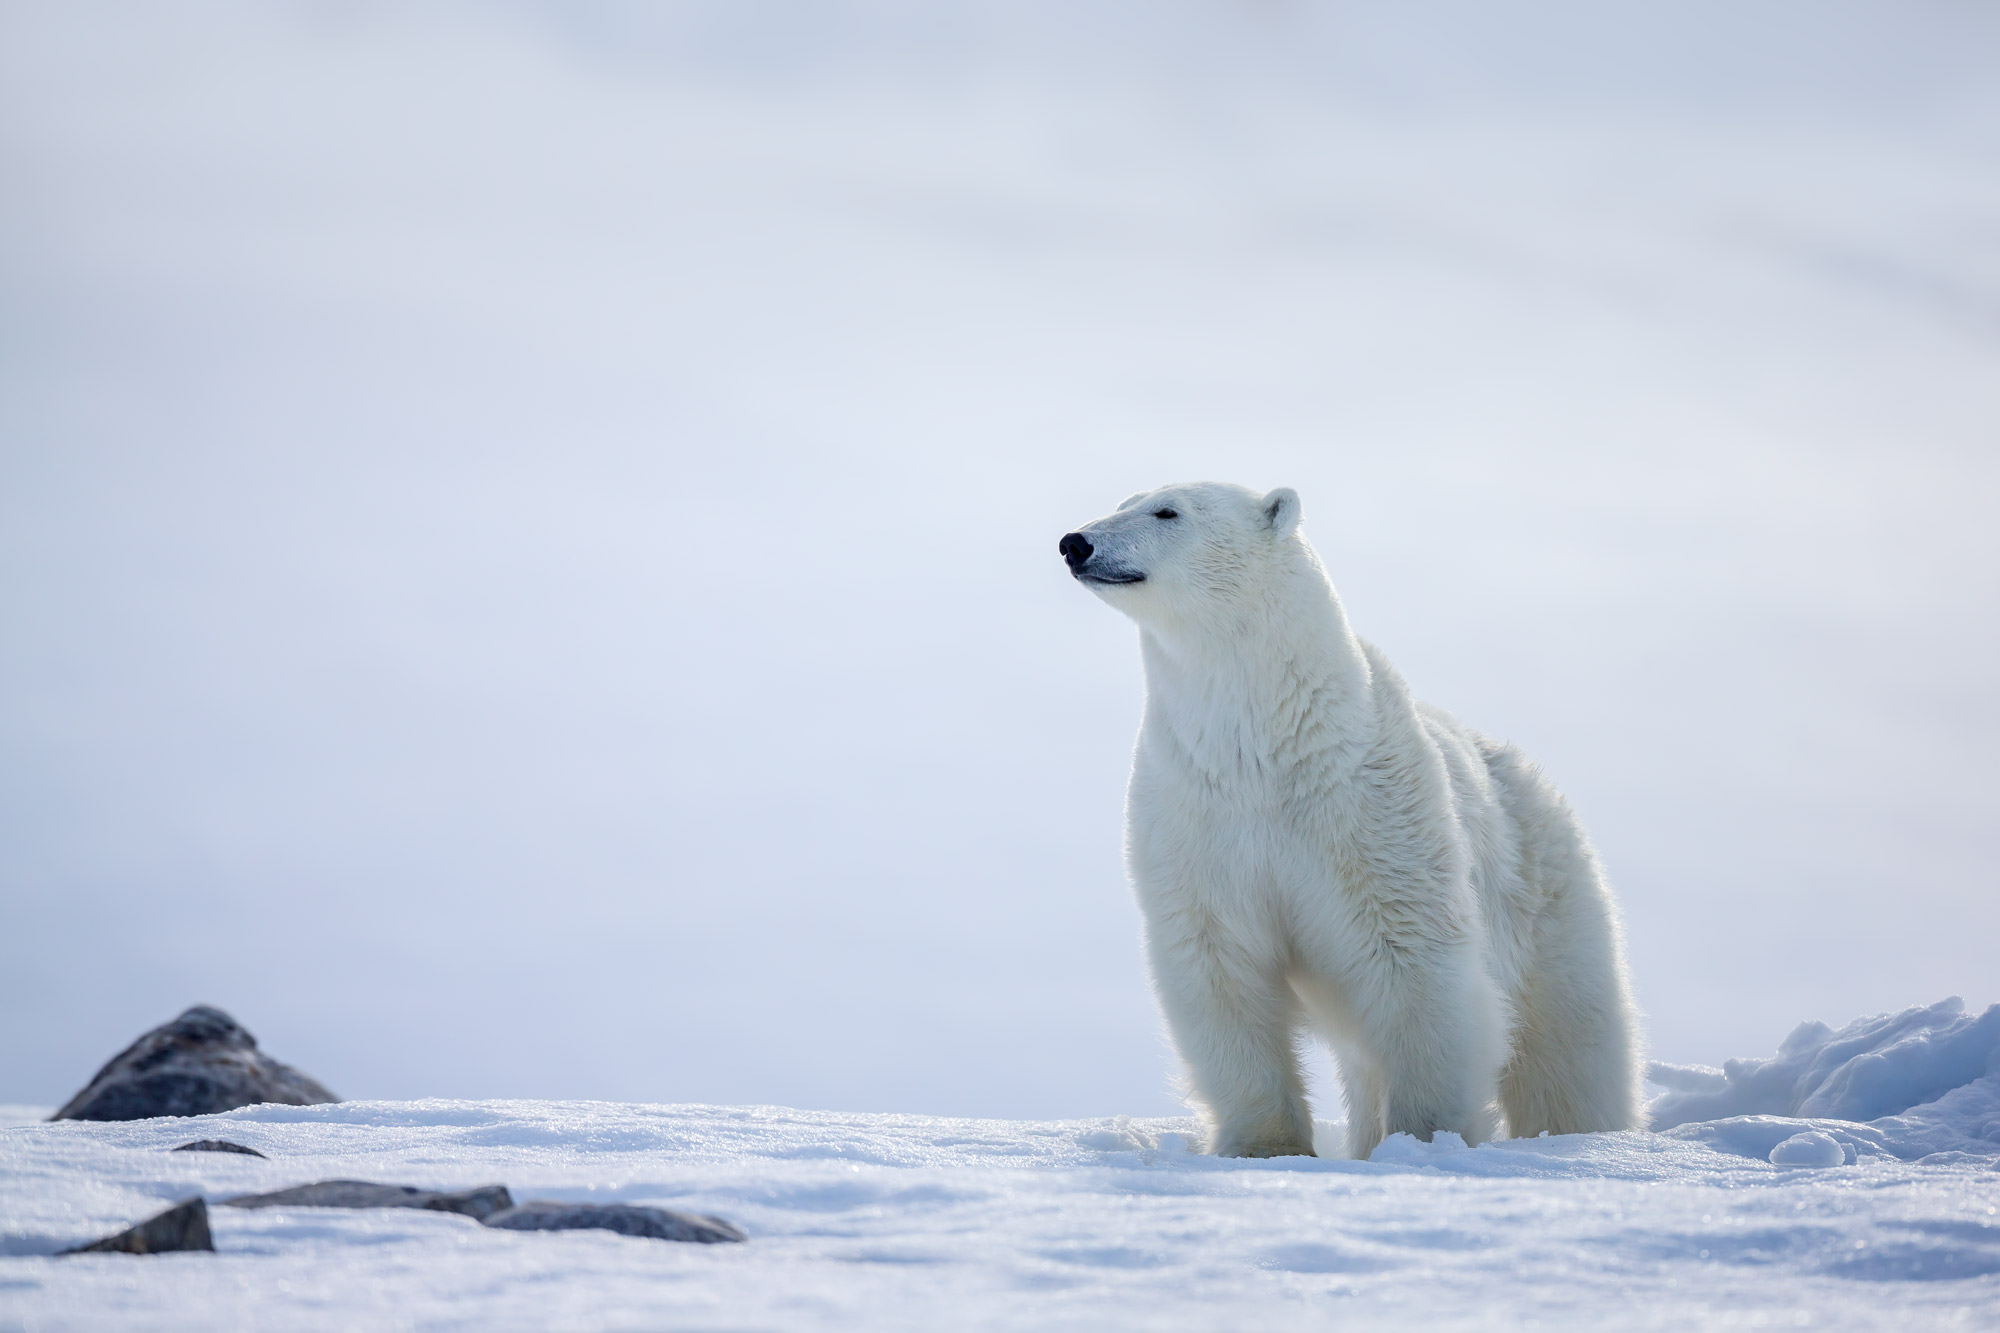 Polar Bear Fine Art Photography A Limited Edition photograph of a Polar Bear standing as the Pride of the Arctic in Spitsbergen...